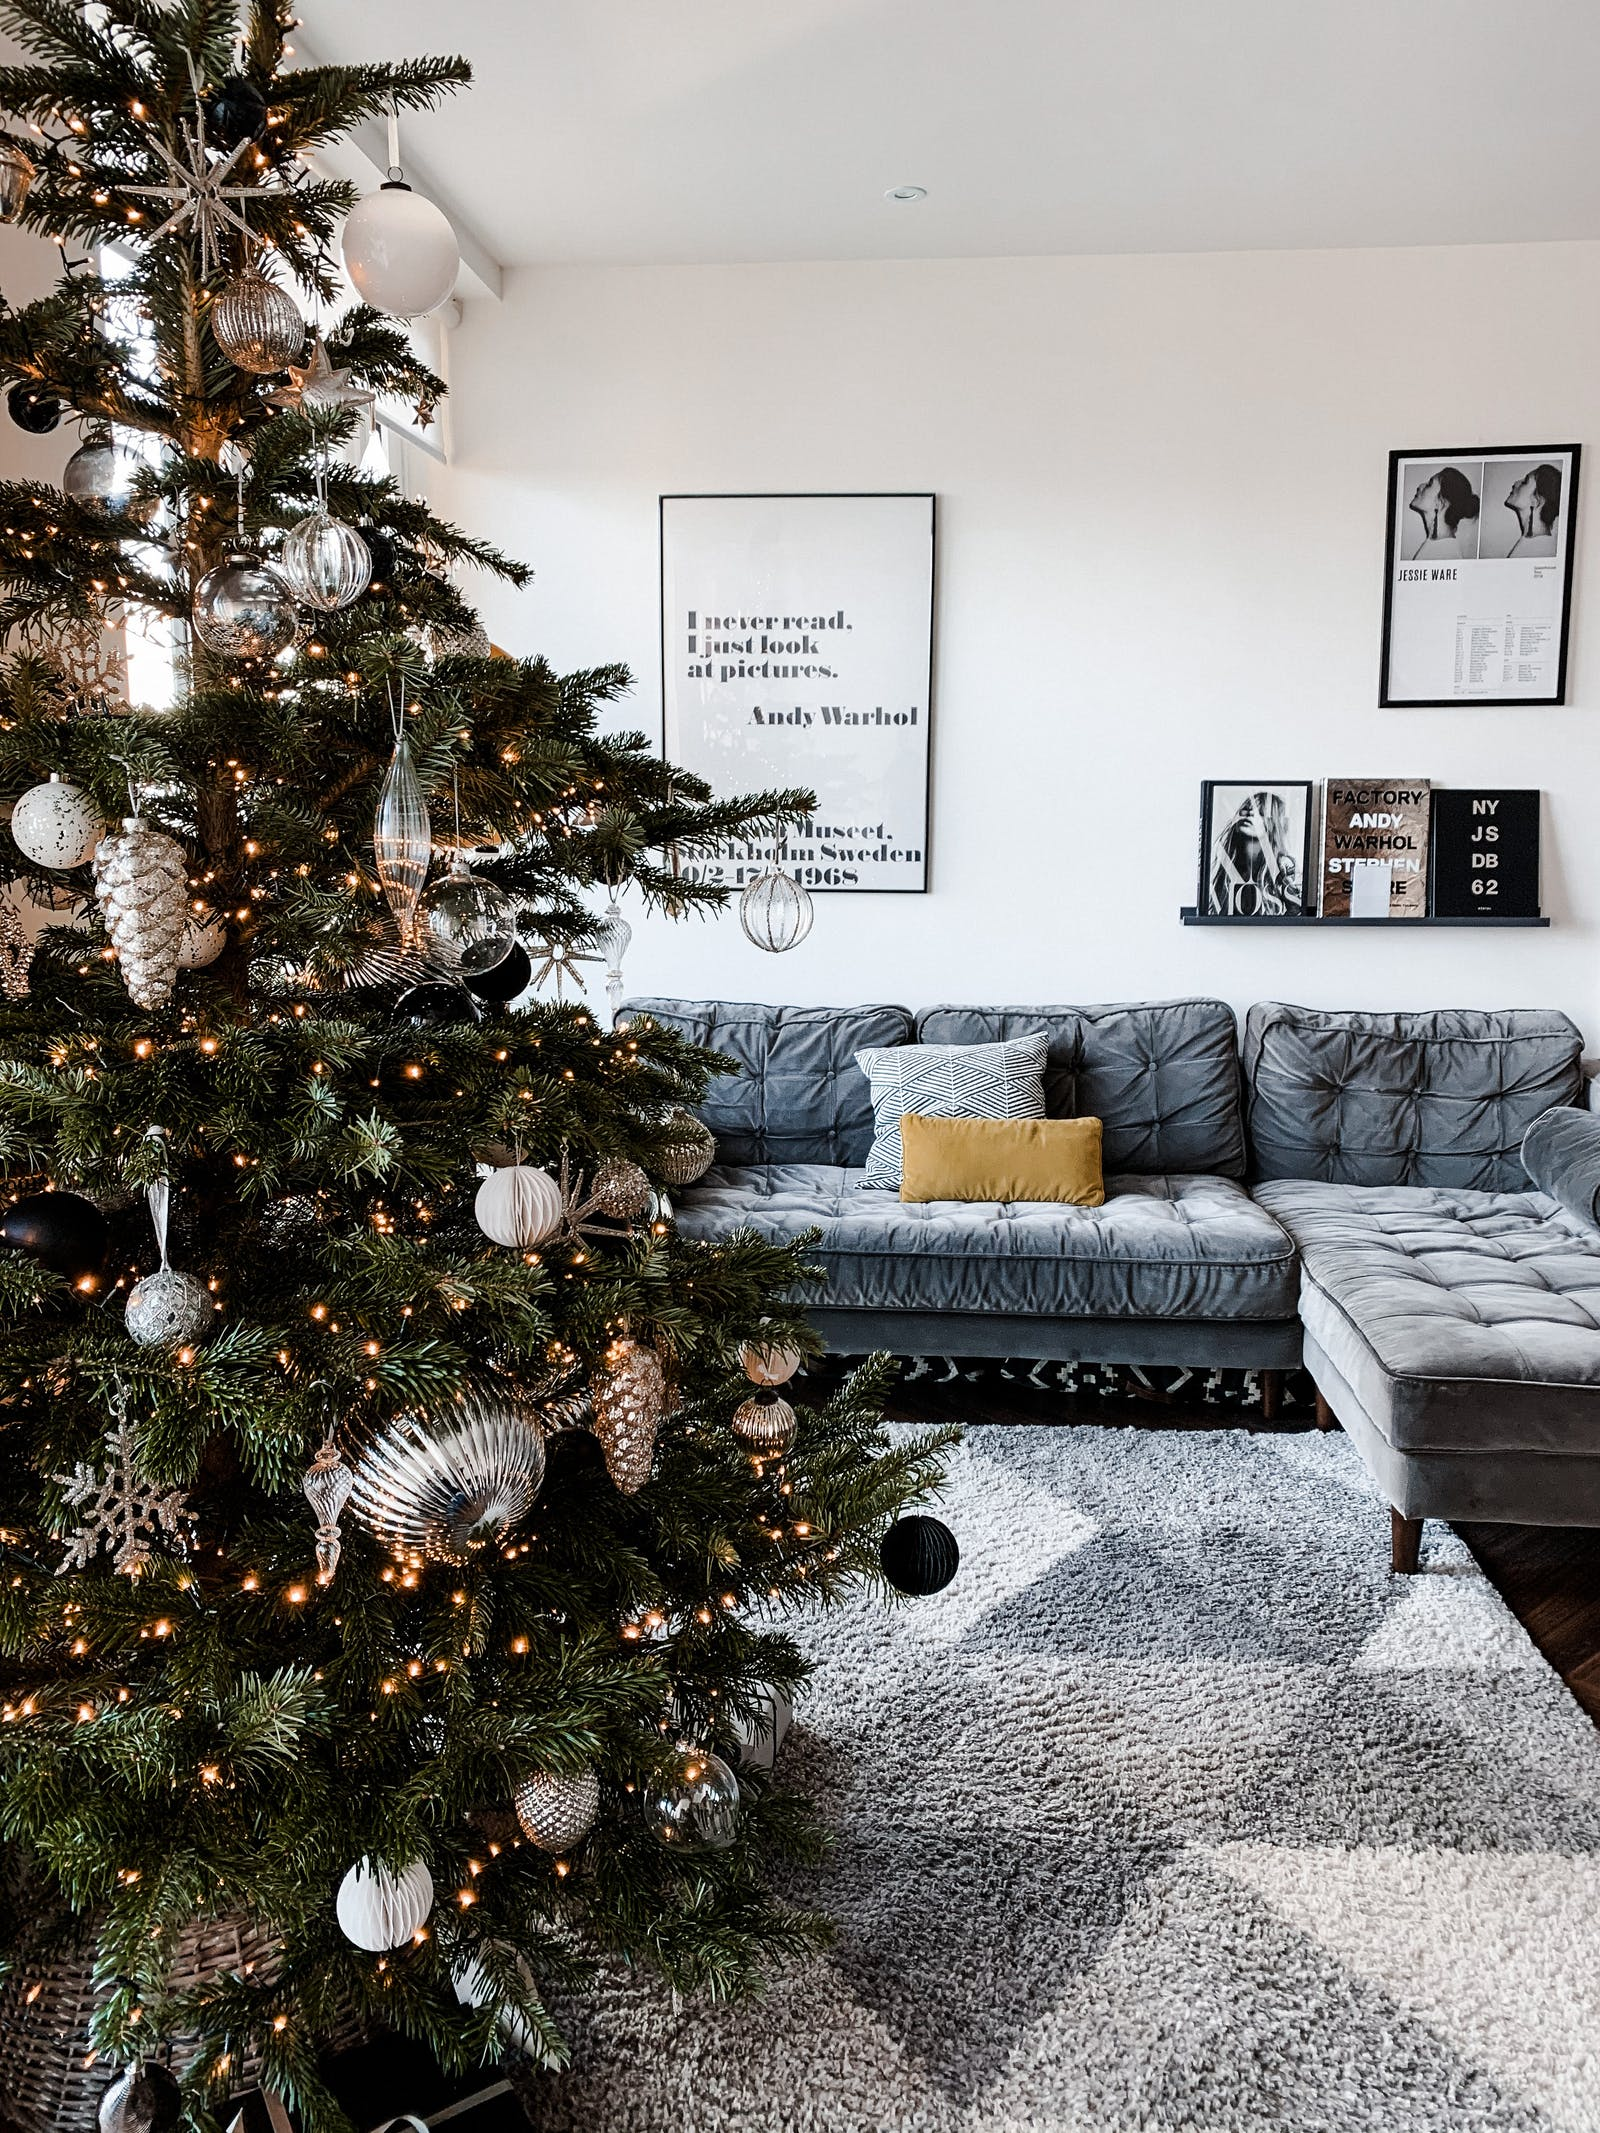 Big L shaped velvet sofa behind a Christmas tree